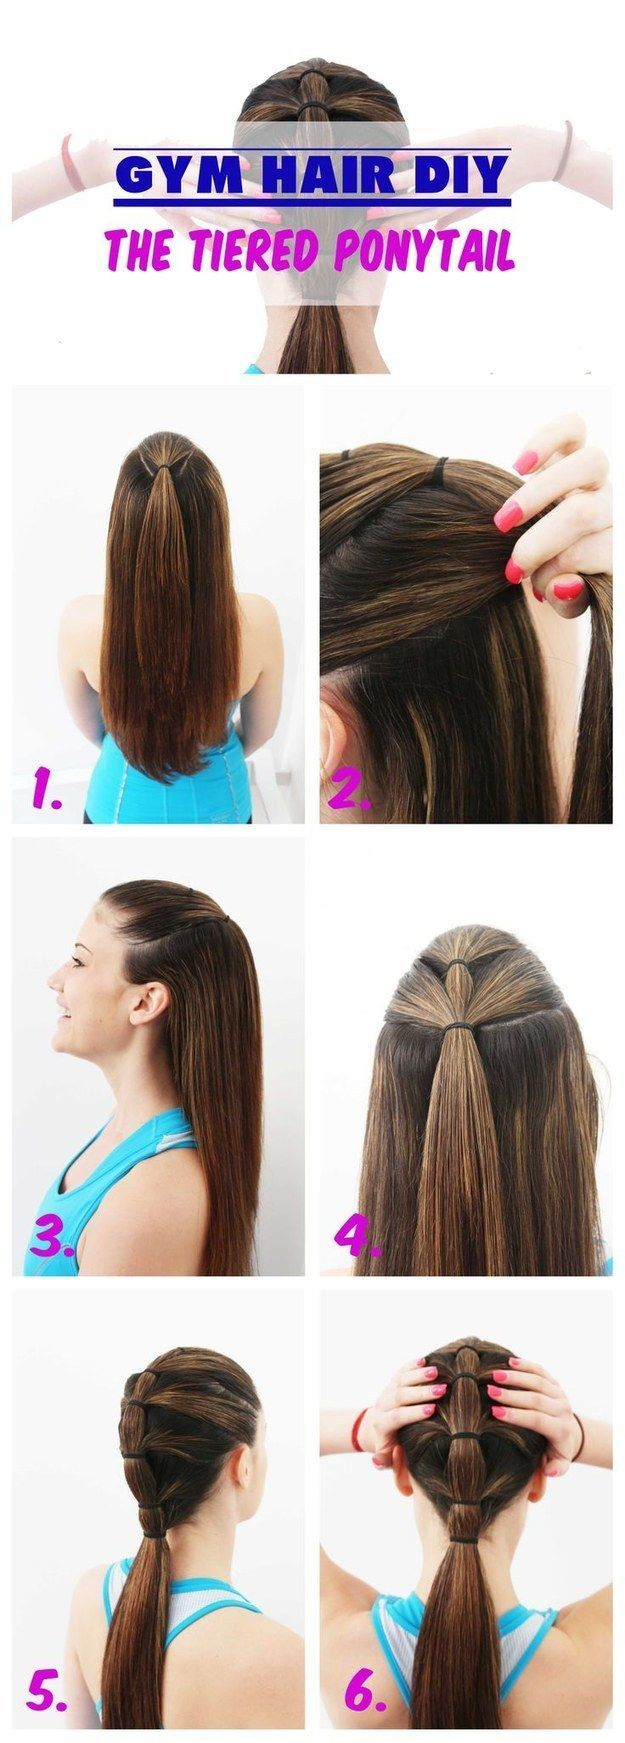 A Tiered Ponytail Will Keep Everything In Its Rightful Place 18 Ingenious Hair Hacks For The Gym